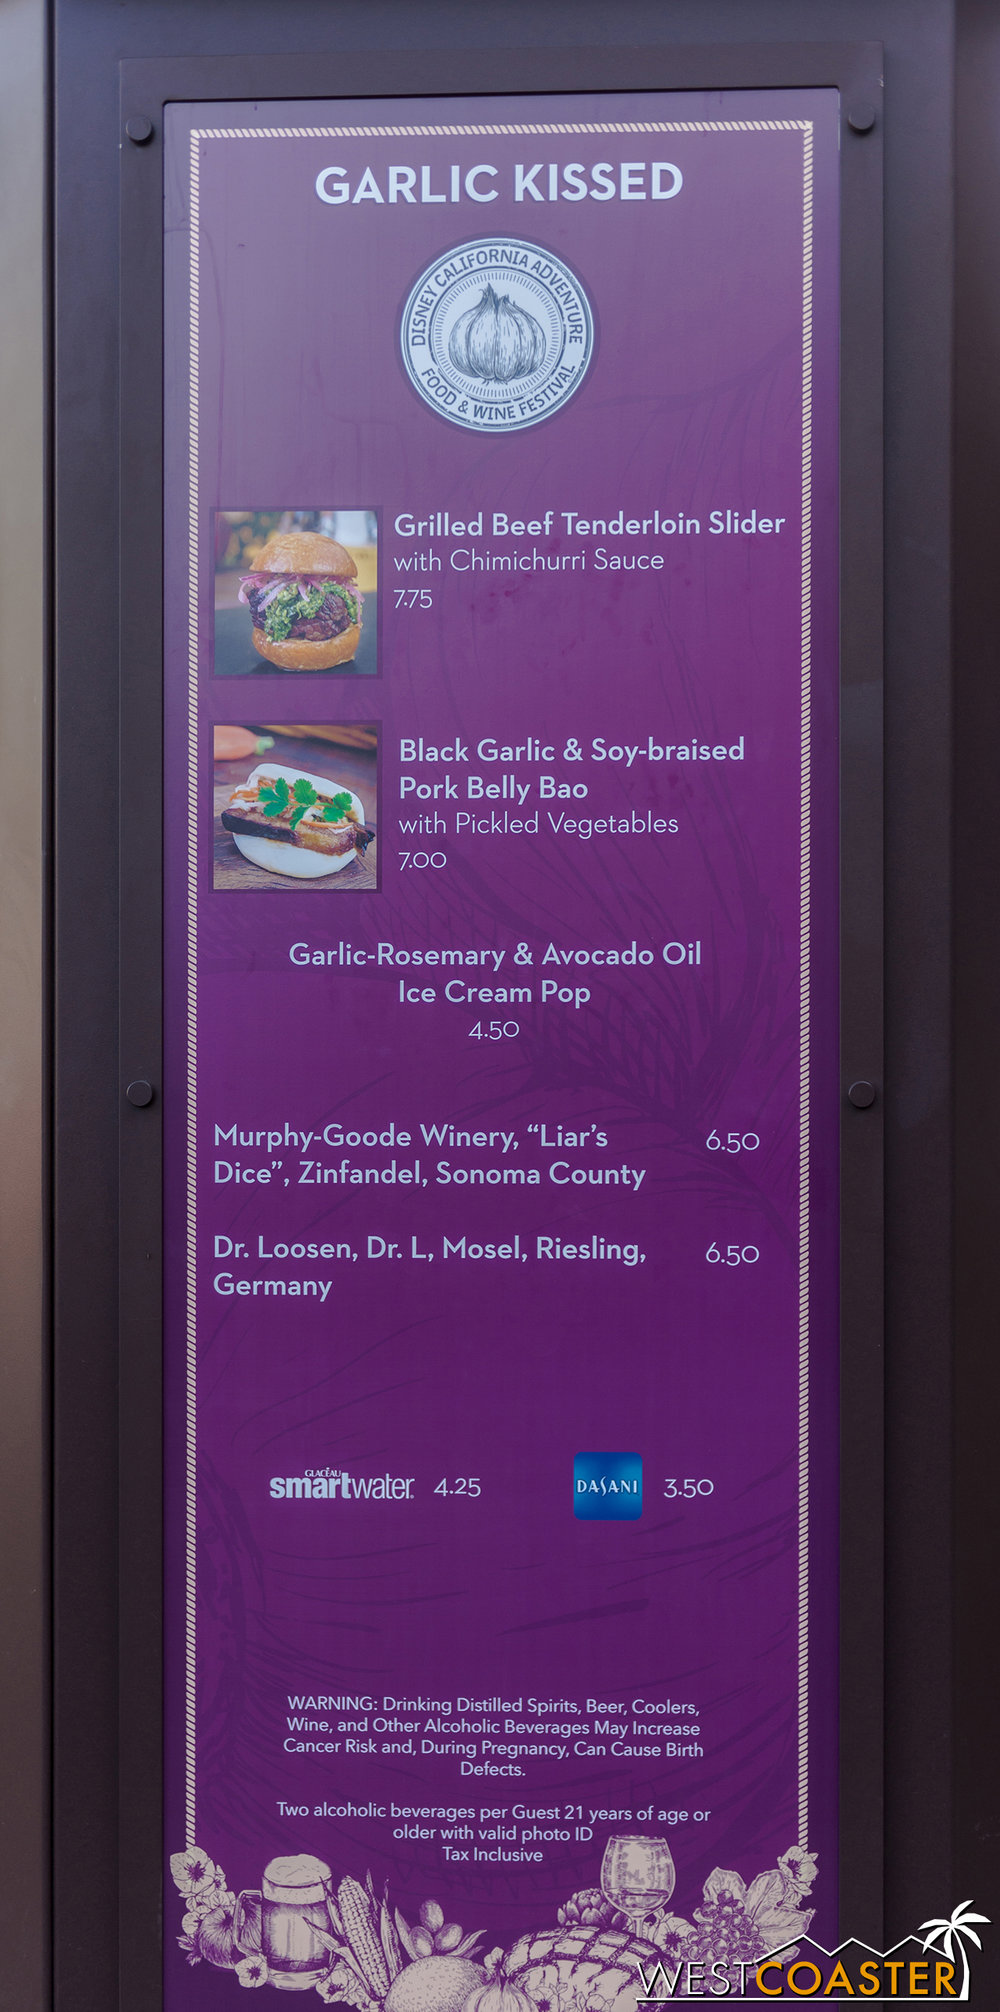 DLR-17_0314-G-Menu-04-GarlicKissed.jpg